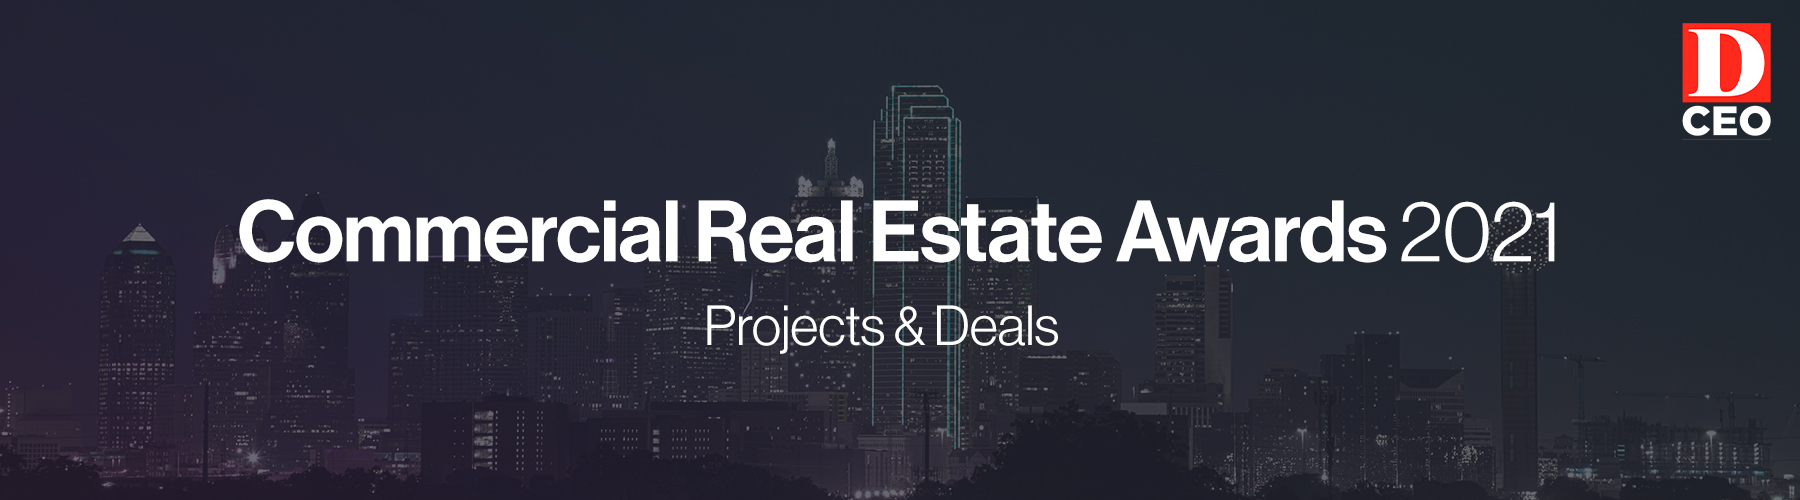 D CEO CREA Projects and Deals 2021